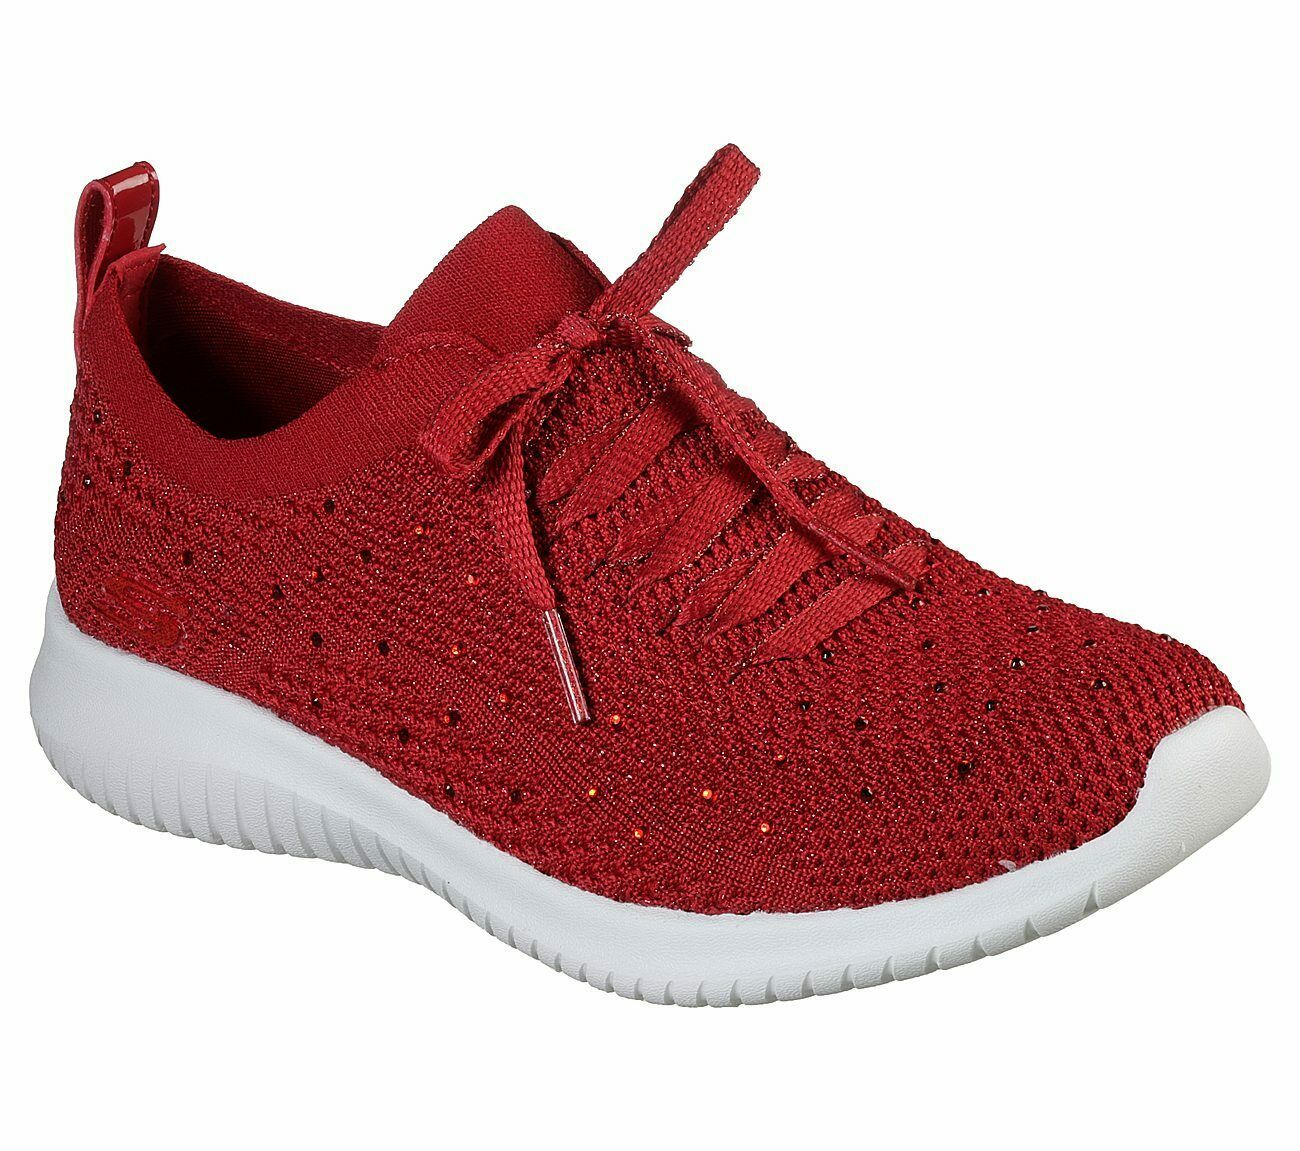 Primary image for Skechers Red Shoes Memory Foam Women Slip On Comfort Casual Sporty Walking 13099